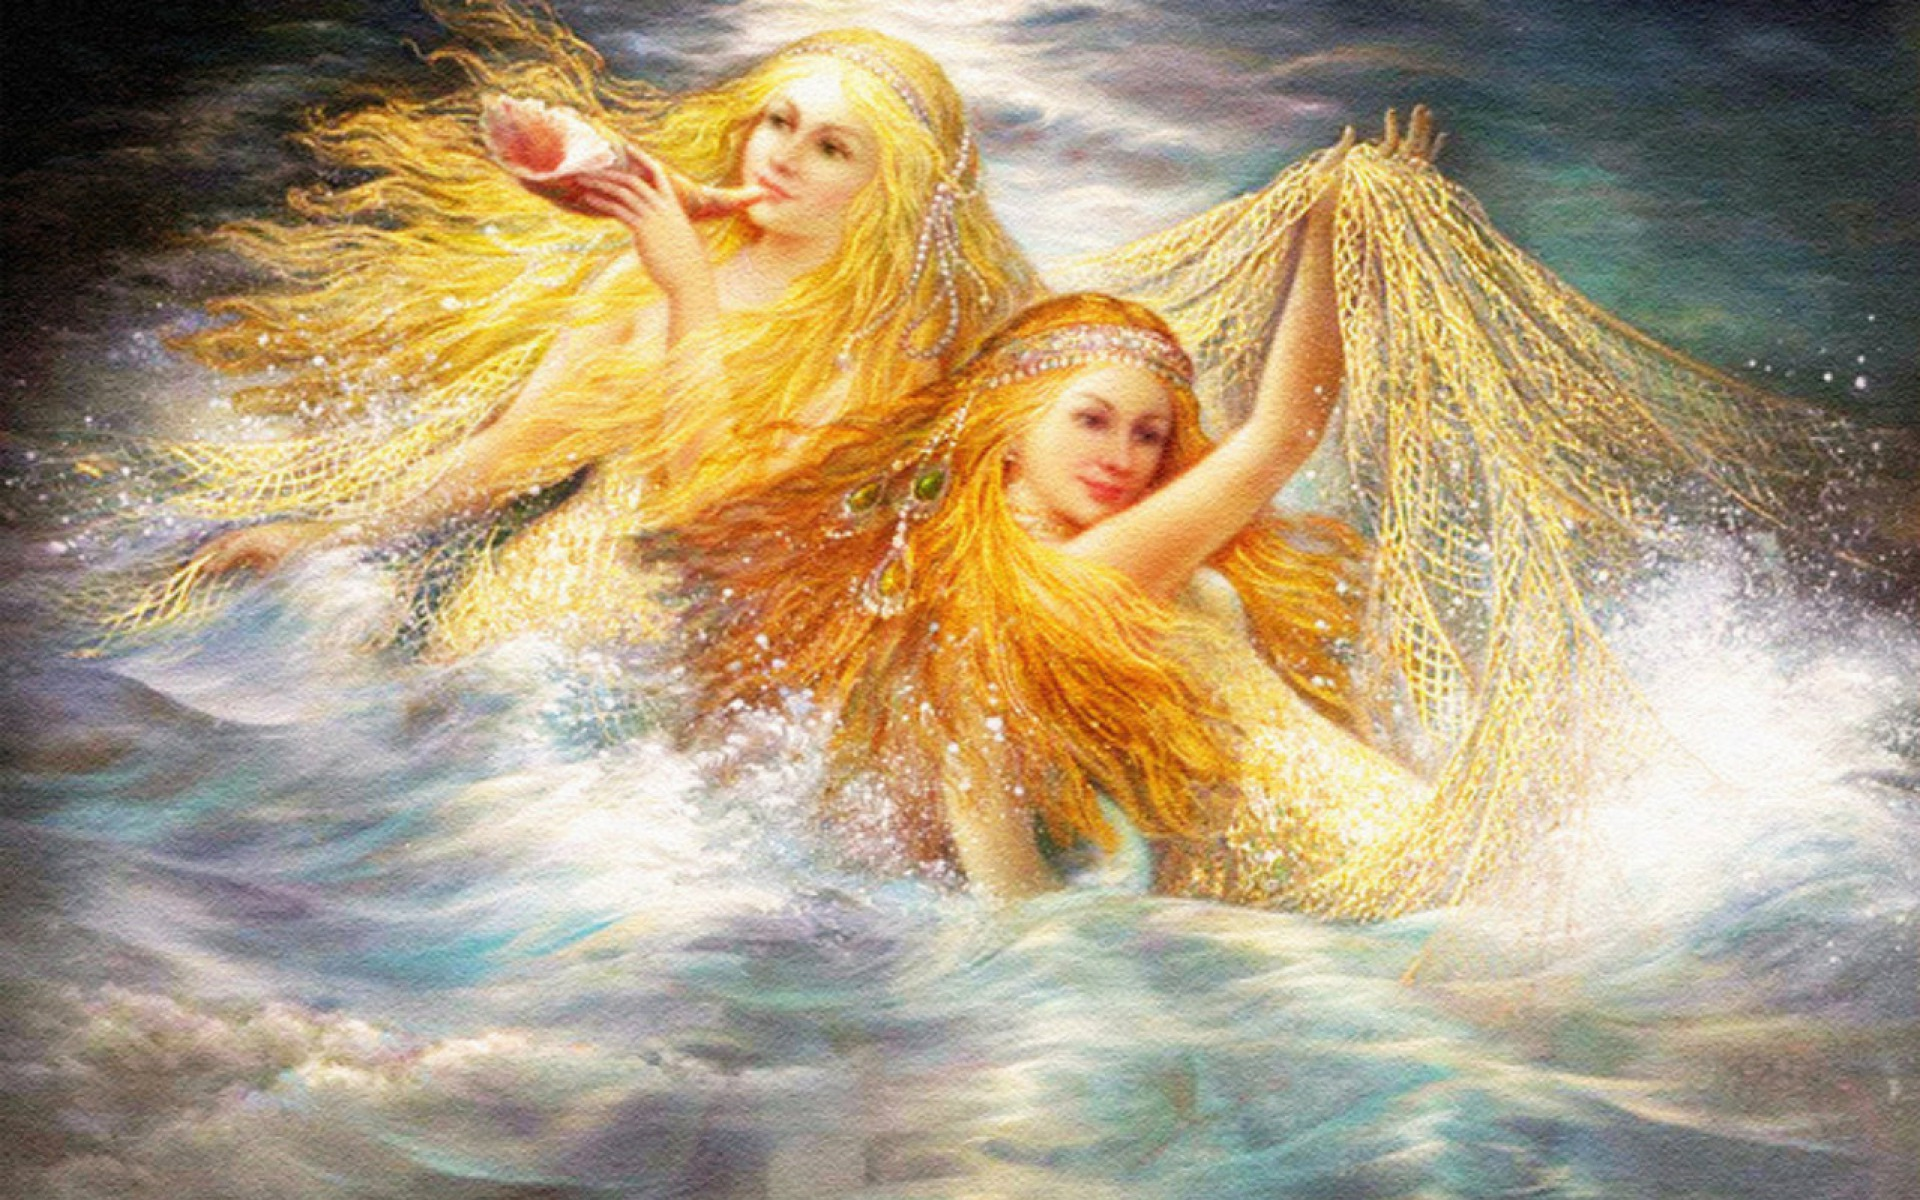 Thanksgiving 3d Wallpaper For Pc Pretty Mermaids Golden Hair Wallpapers Pretty Mermaids